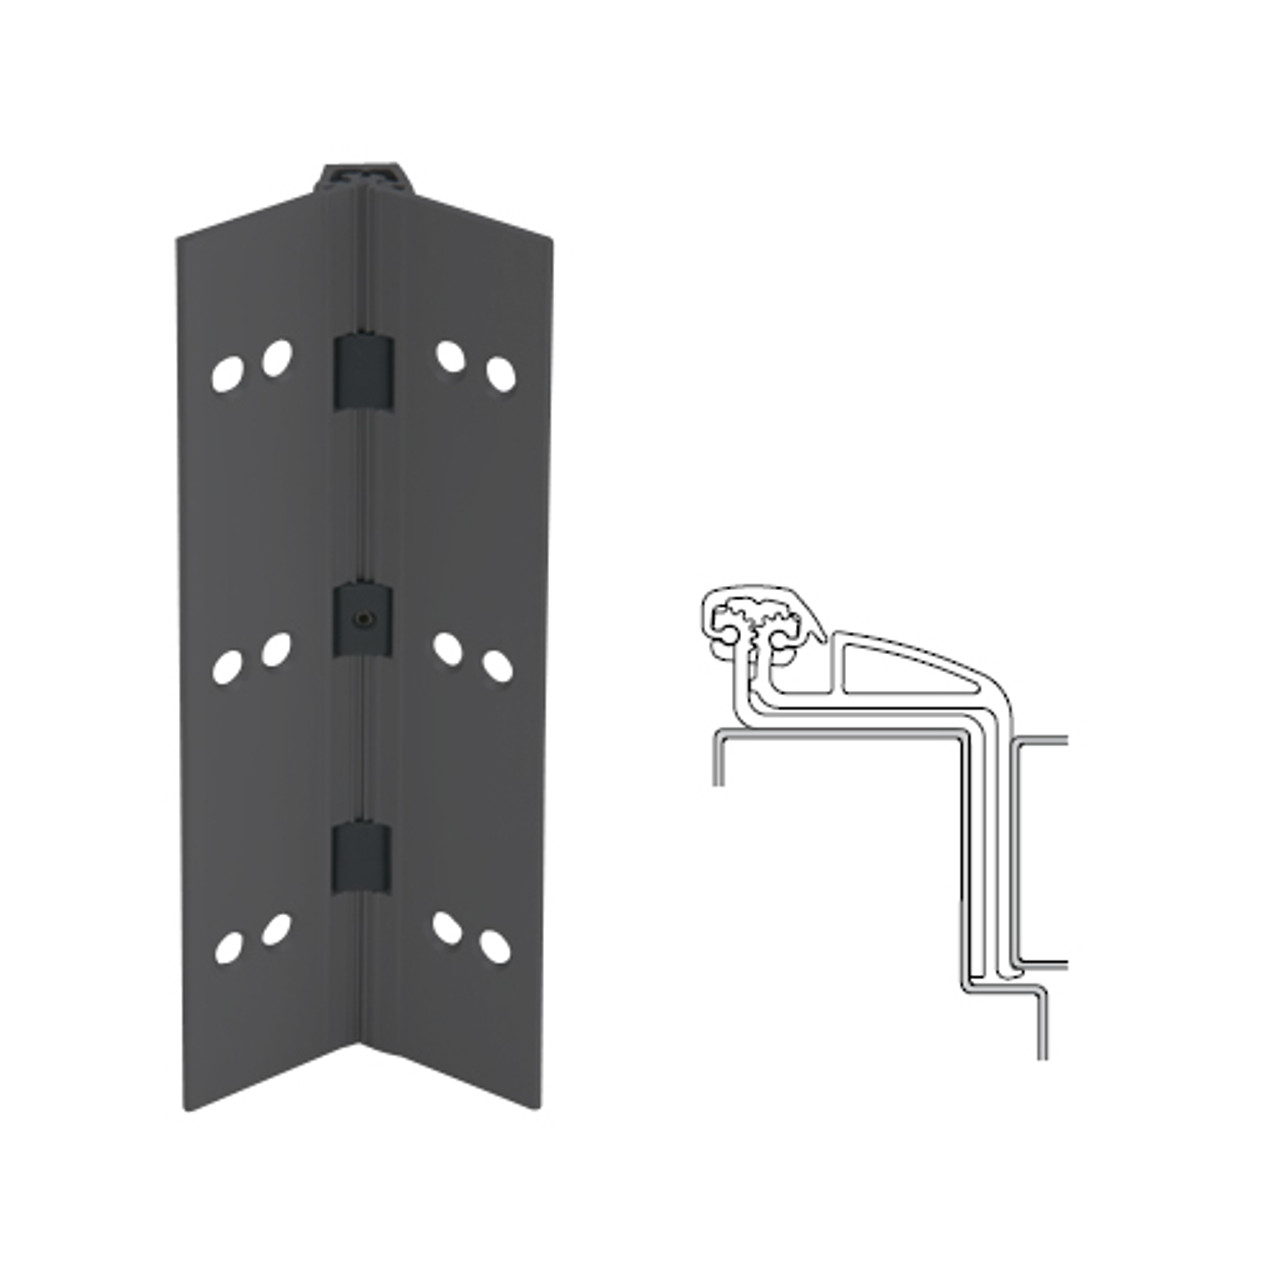 041XY-315AN-95-WD IVES Full Mortise Continuous Geared Hinges with Wood Screws in Anodized Black